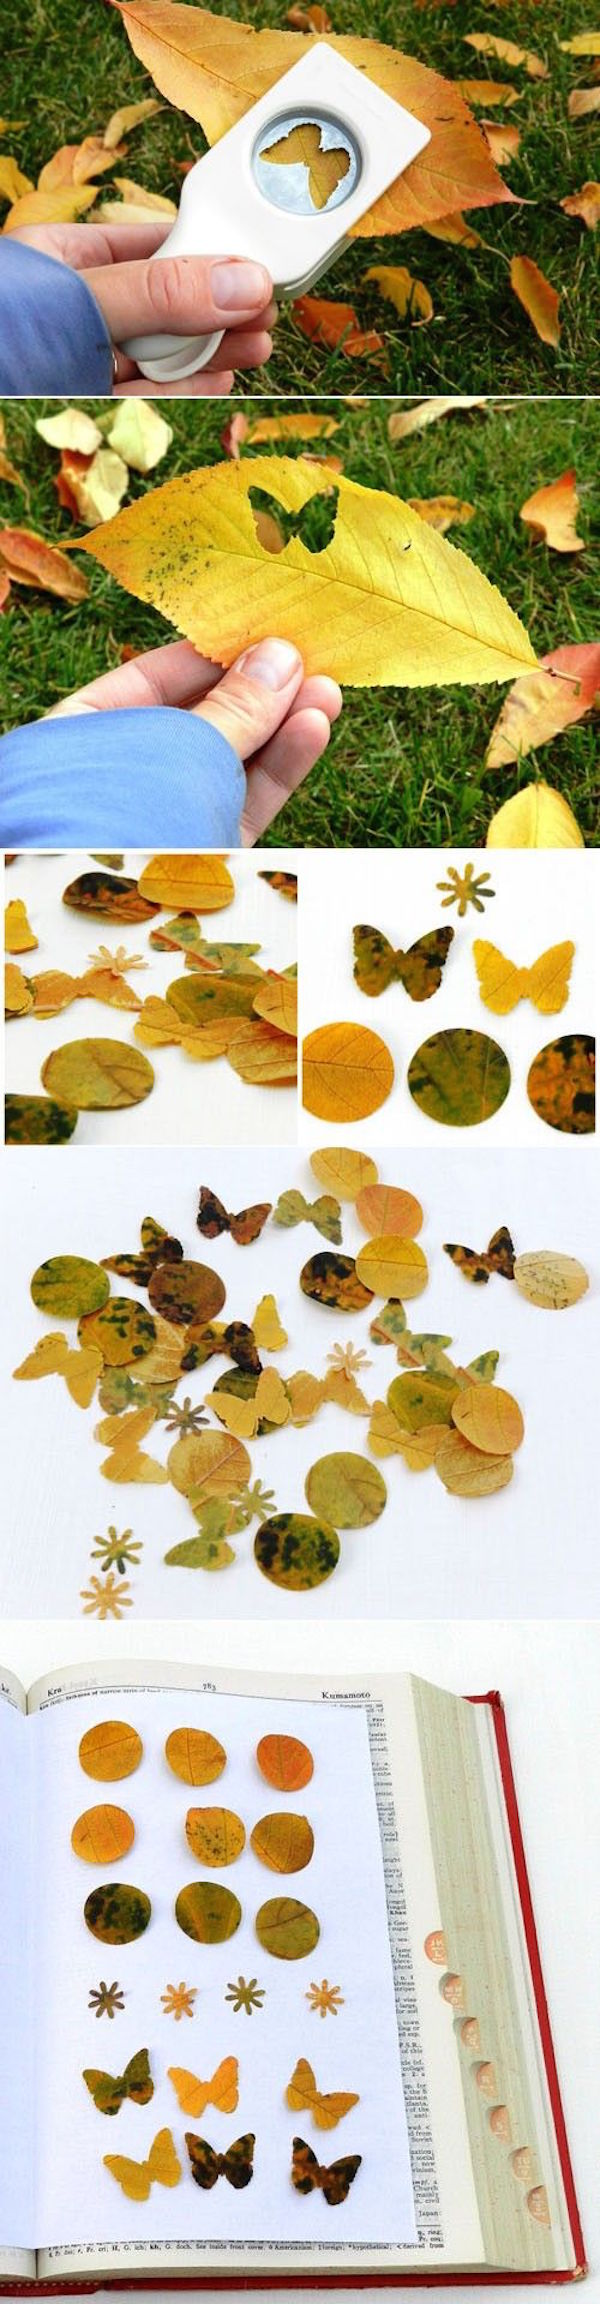 Make nature inspired confetti to decorate for the fall using fall leaves and hole punchers.